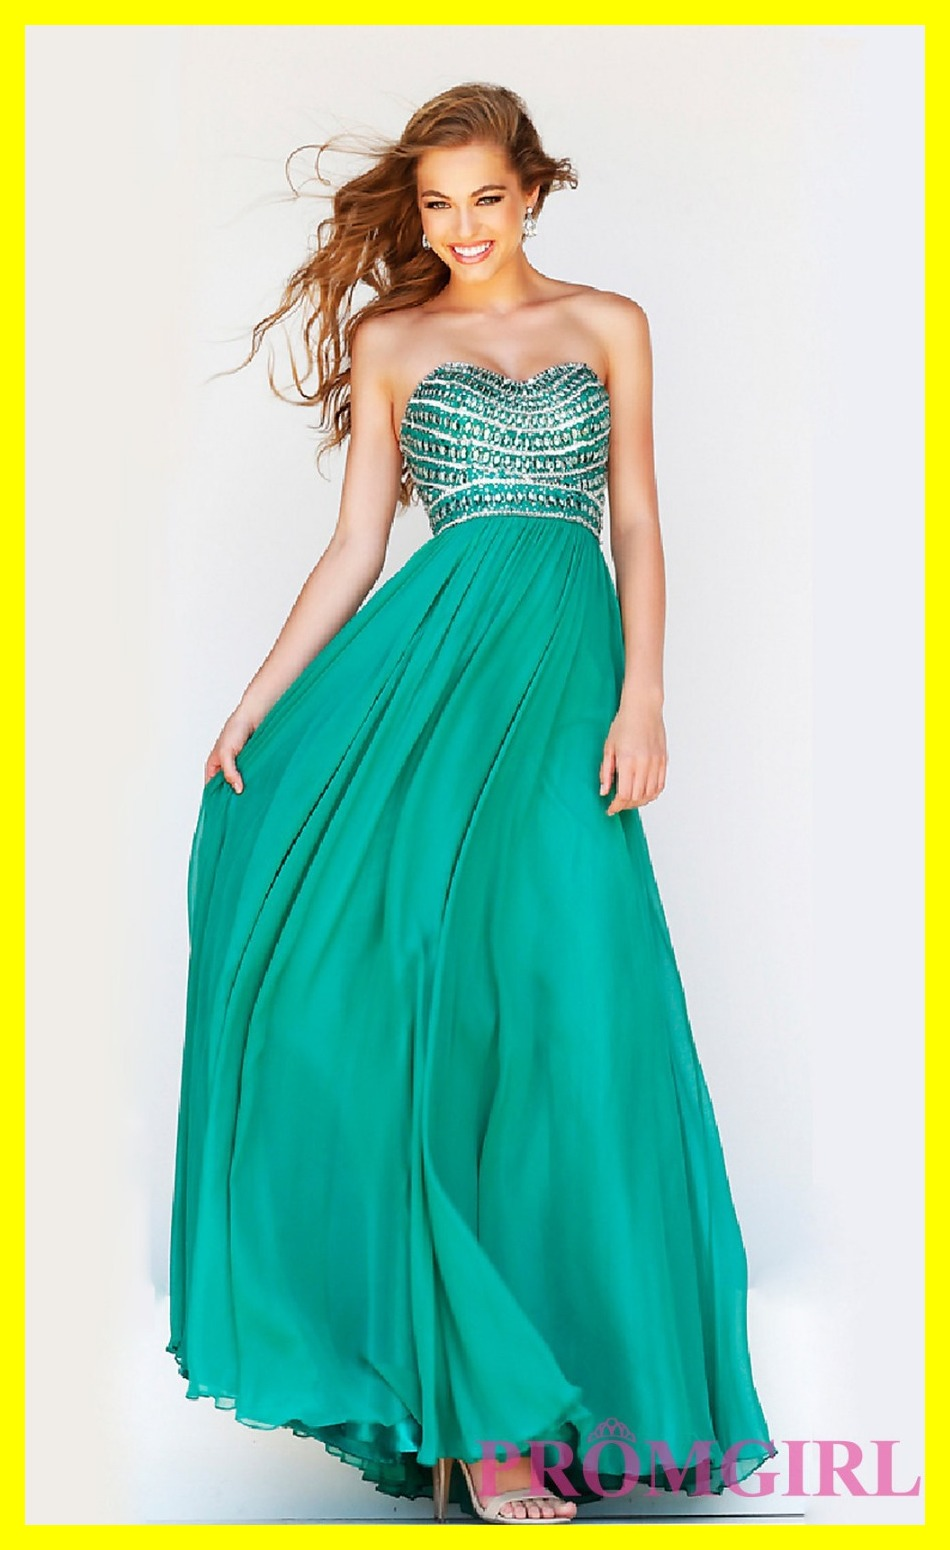 Prom Dress Websites Cheap - Ocodea.com